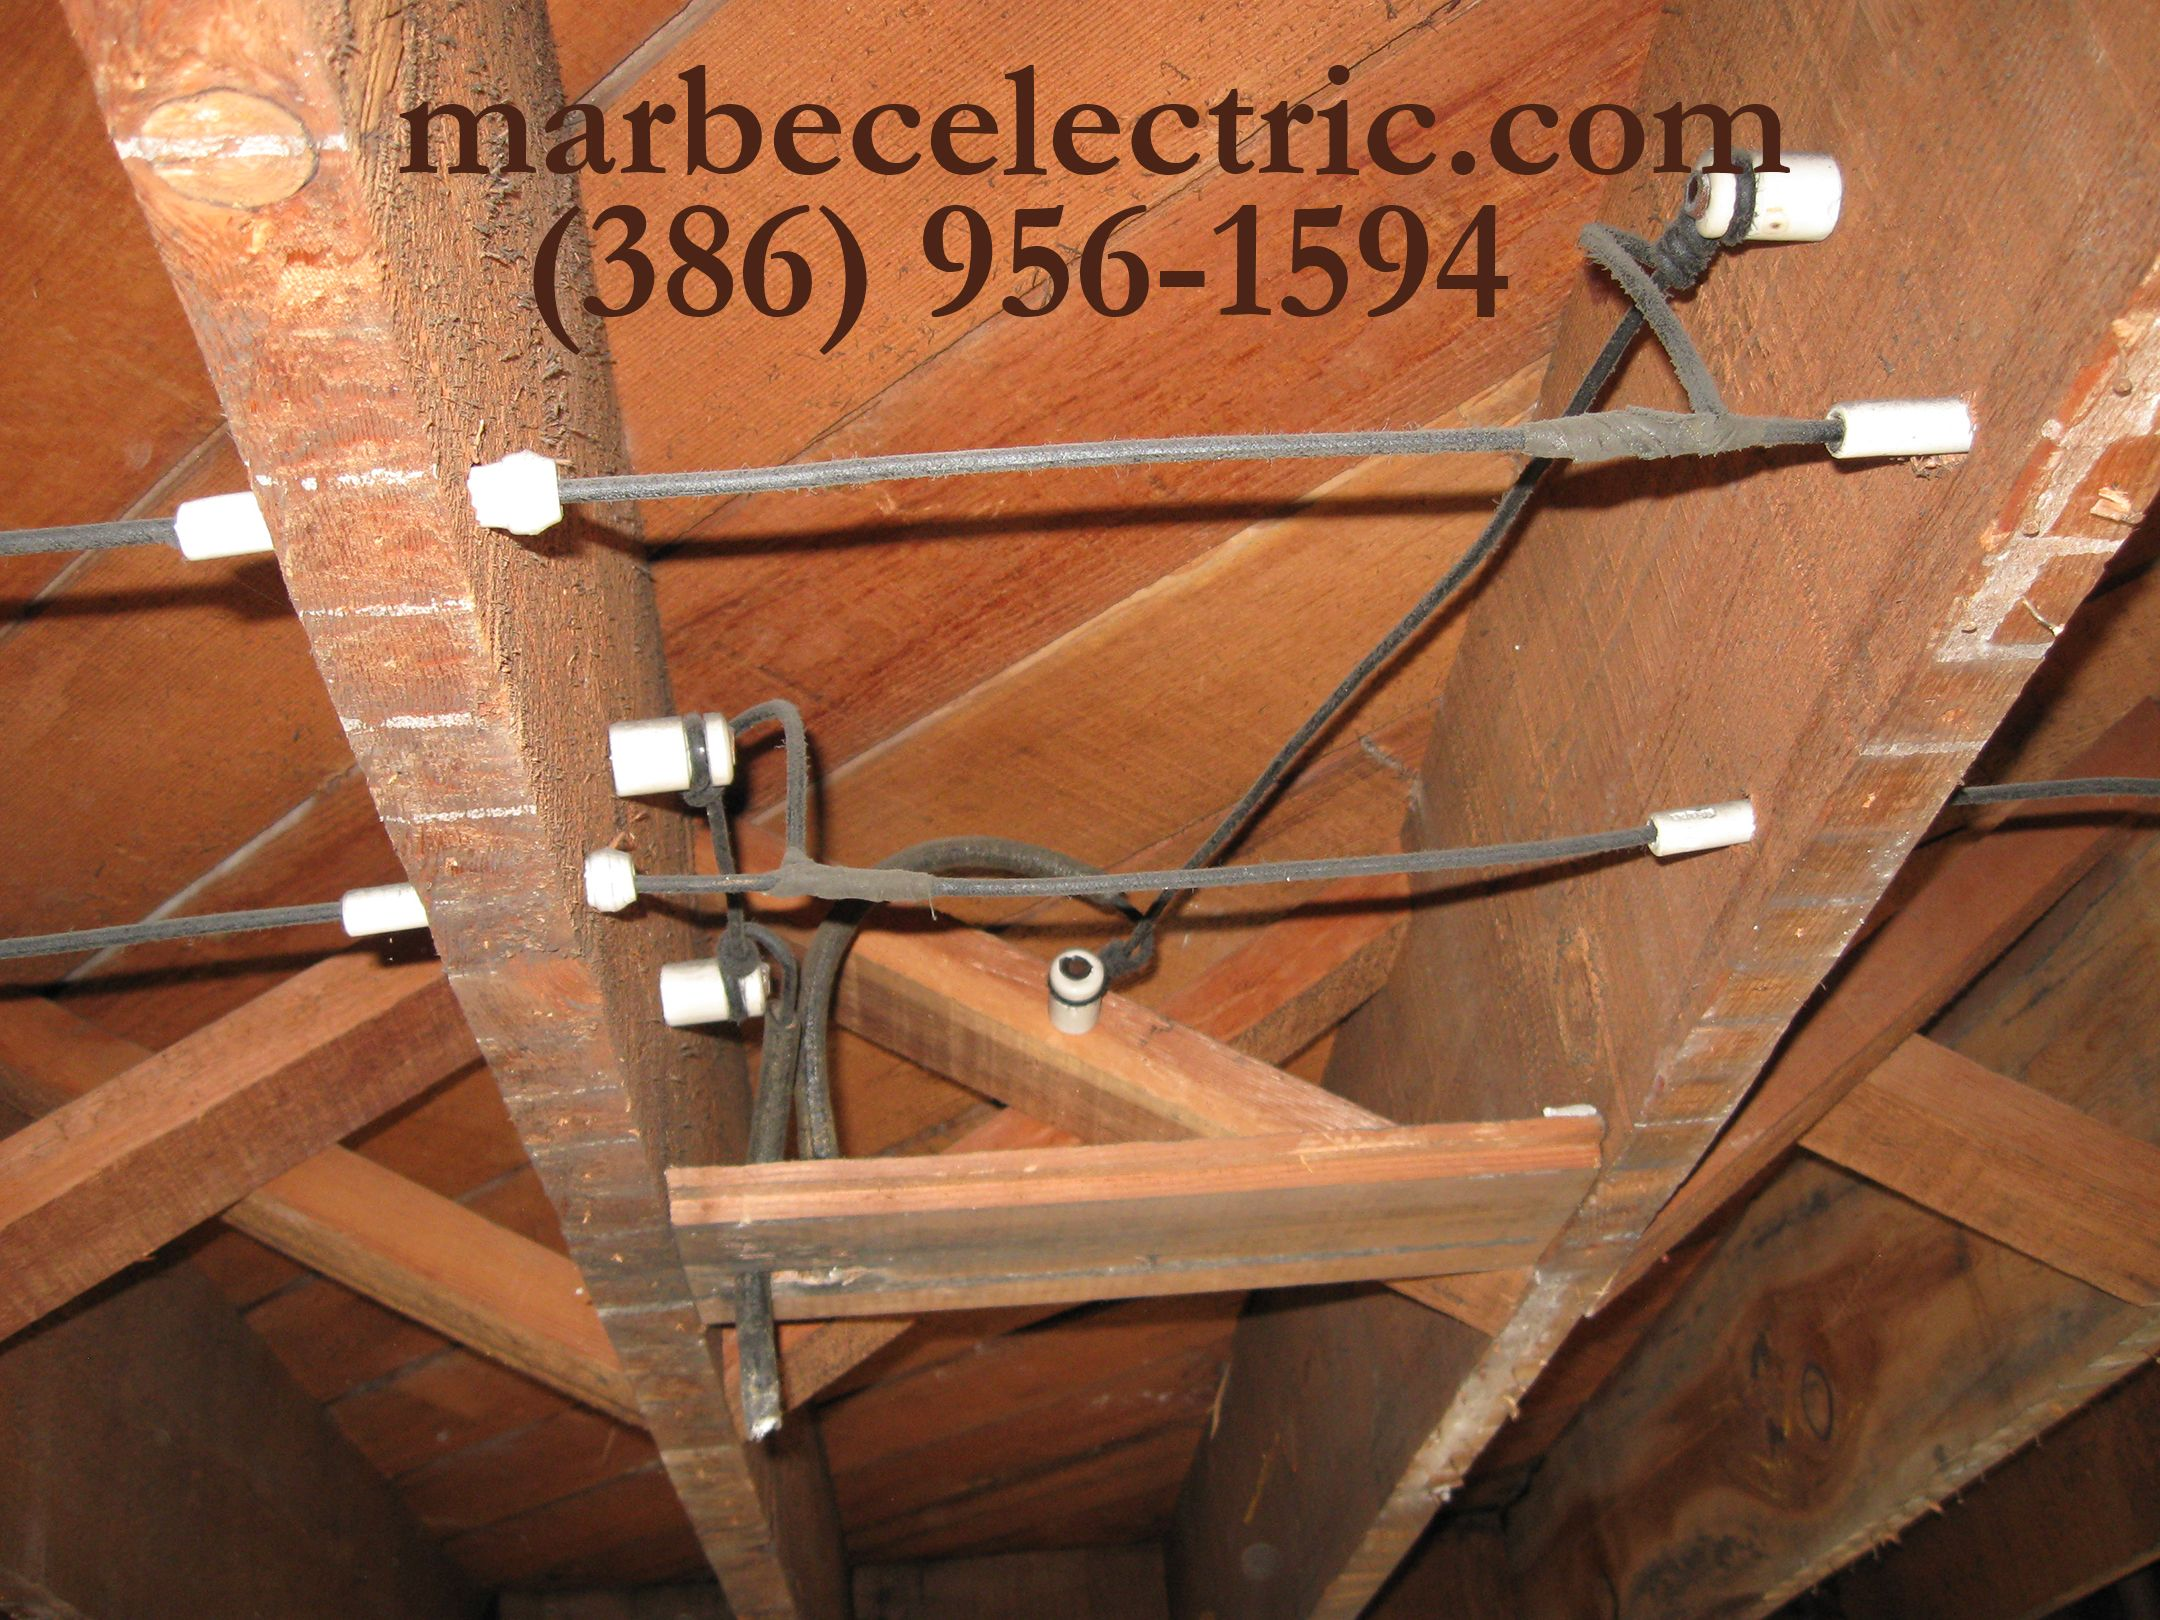 old electrical wiring let marbecelectric com handle it don t be a rh  pinterest com Old